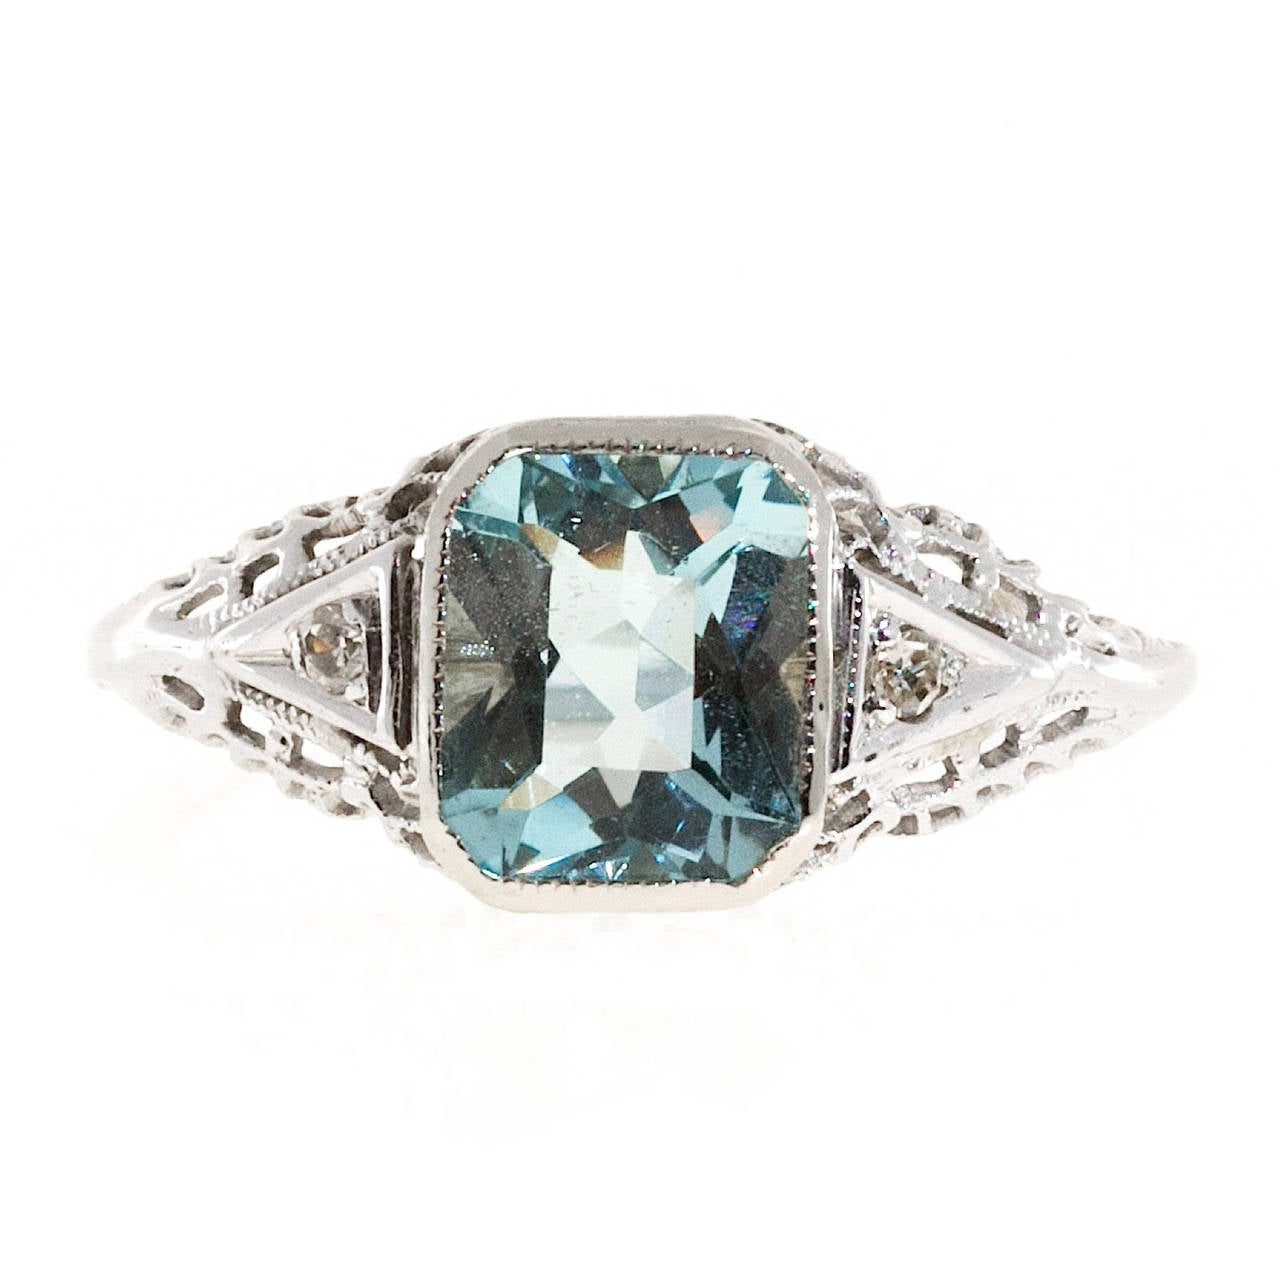 Aquamarine Diamond Gold Filigree Ring In Good Condition For Sale In Stamford, CT